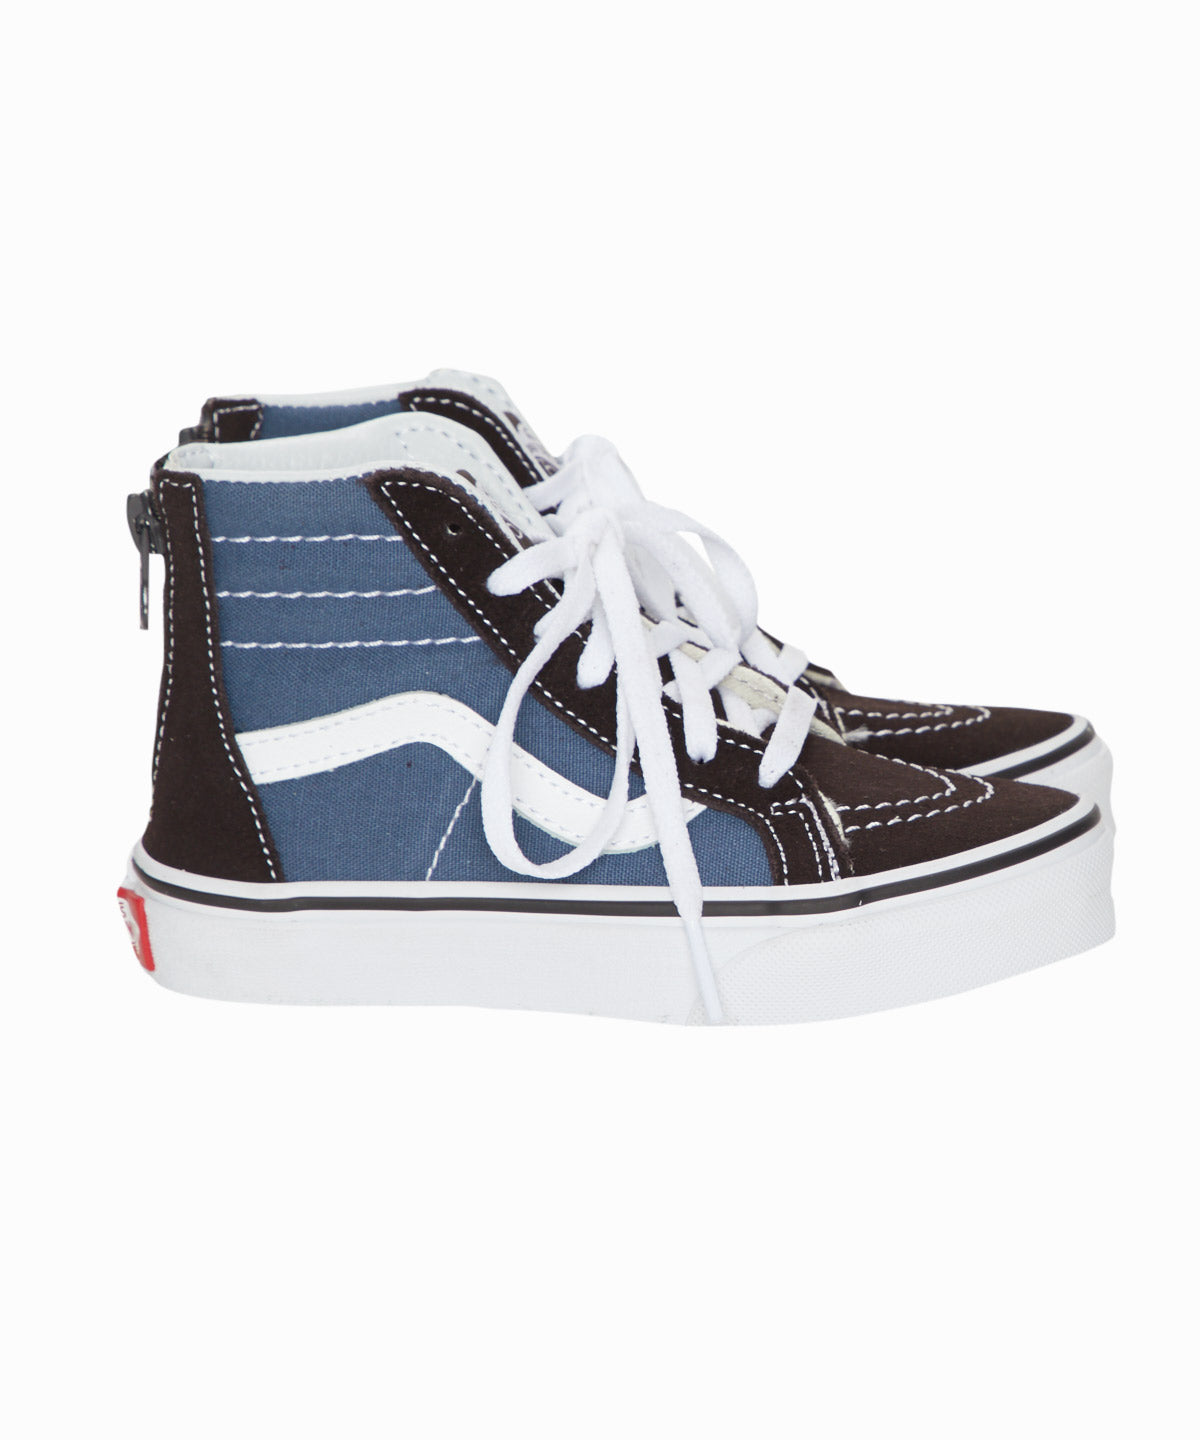 SK8- Hi Top Zip Black & Blue Sneakers